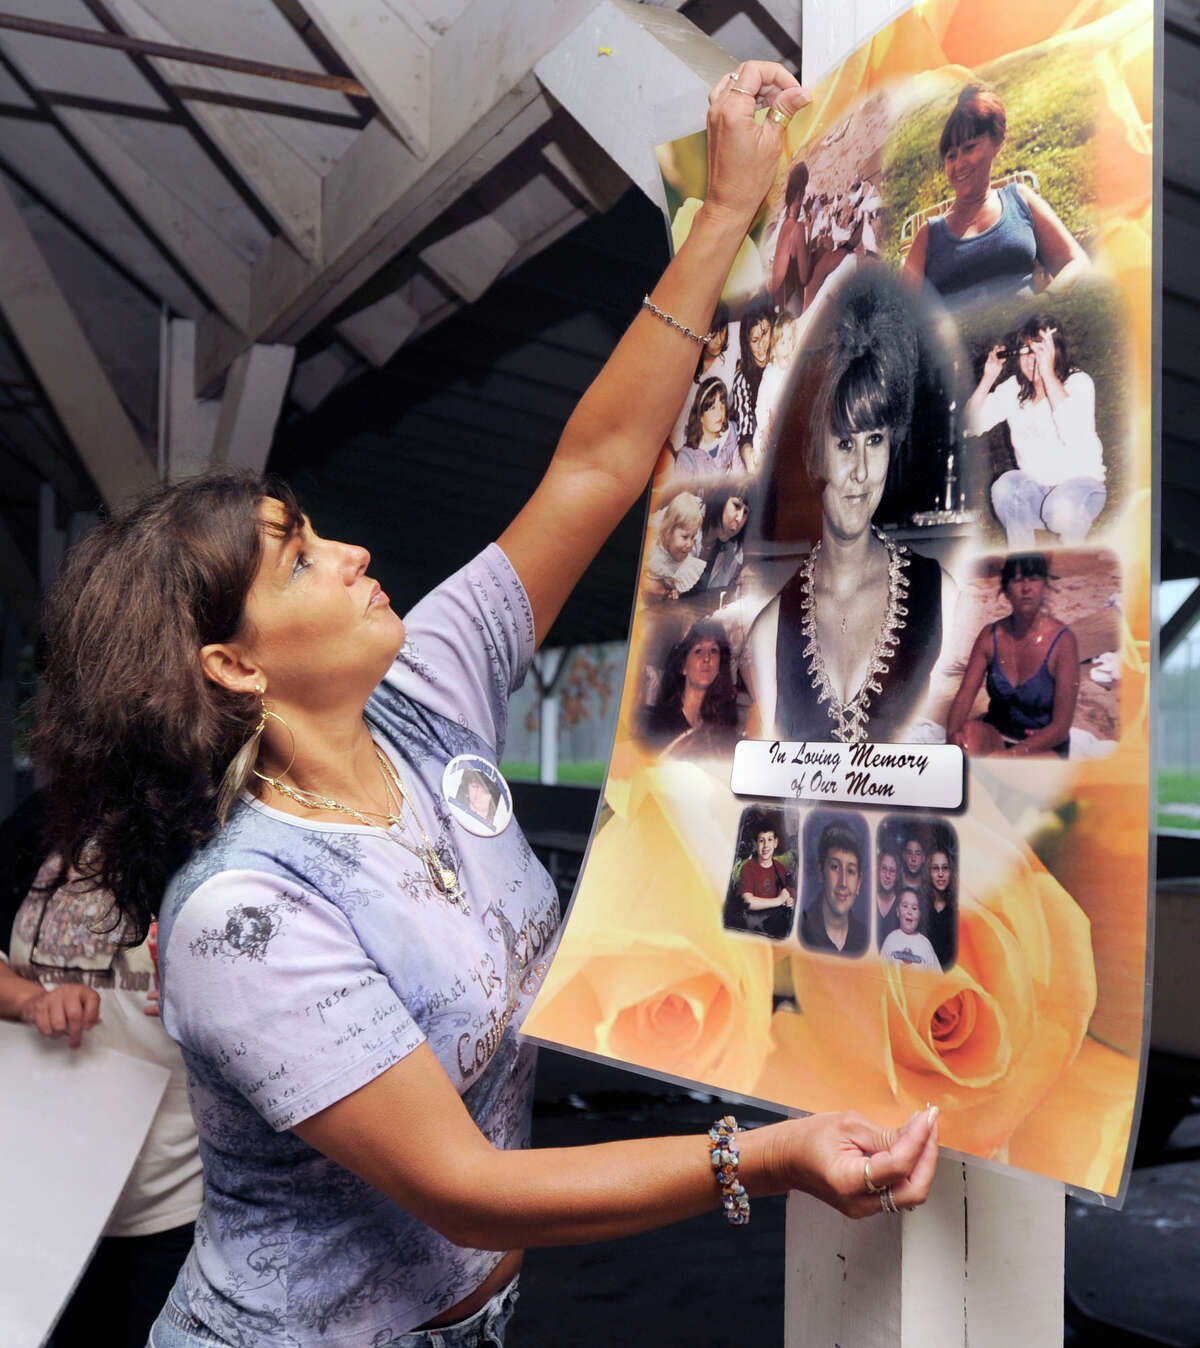 Beth Profeta, 46, puts up a poster remembering her mother Mary Badaracco who disappeared from her Sherman home 26 years ago. Sunday she and her sister Sherrie Passaro held a memorial to remember their mother along with other people that are also missing. Photo taken Sunday, August 22, 2010.